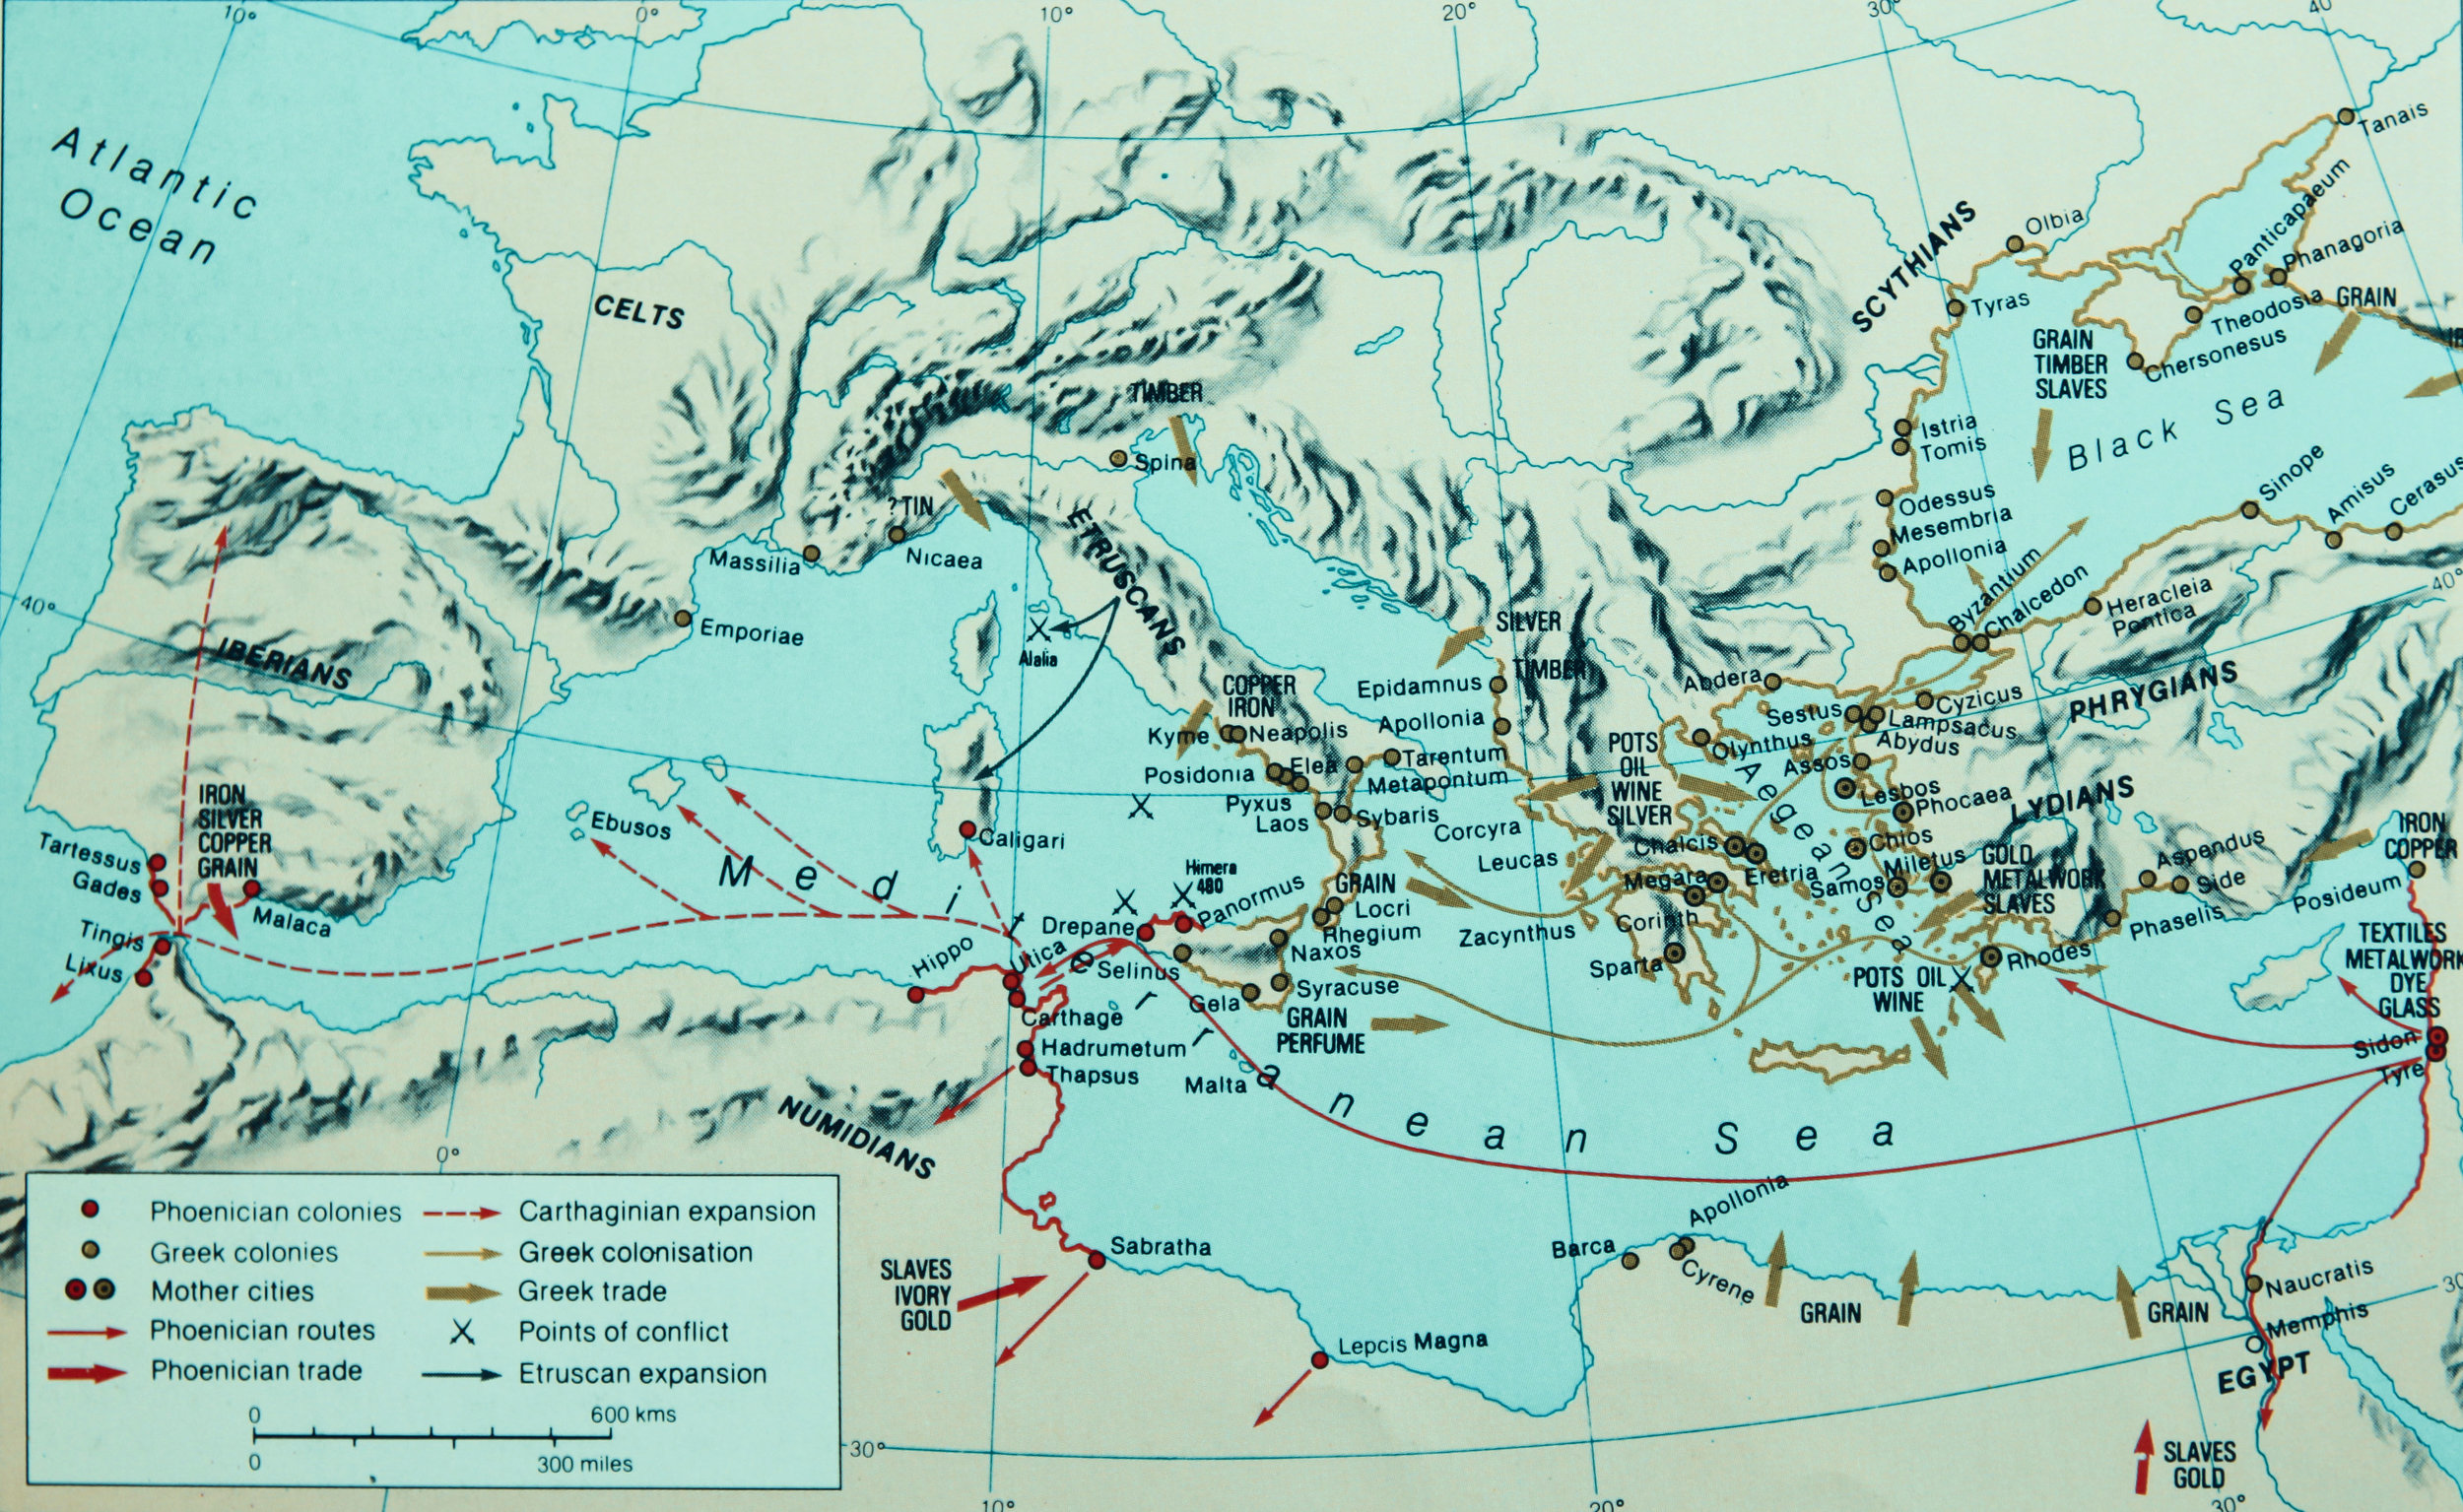 Phoenicians and the Greeks. Source: R.I. Moore (1981) Hamlyn Historical Atlas.